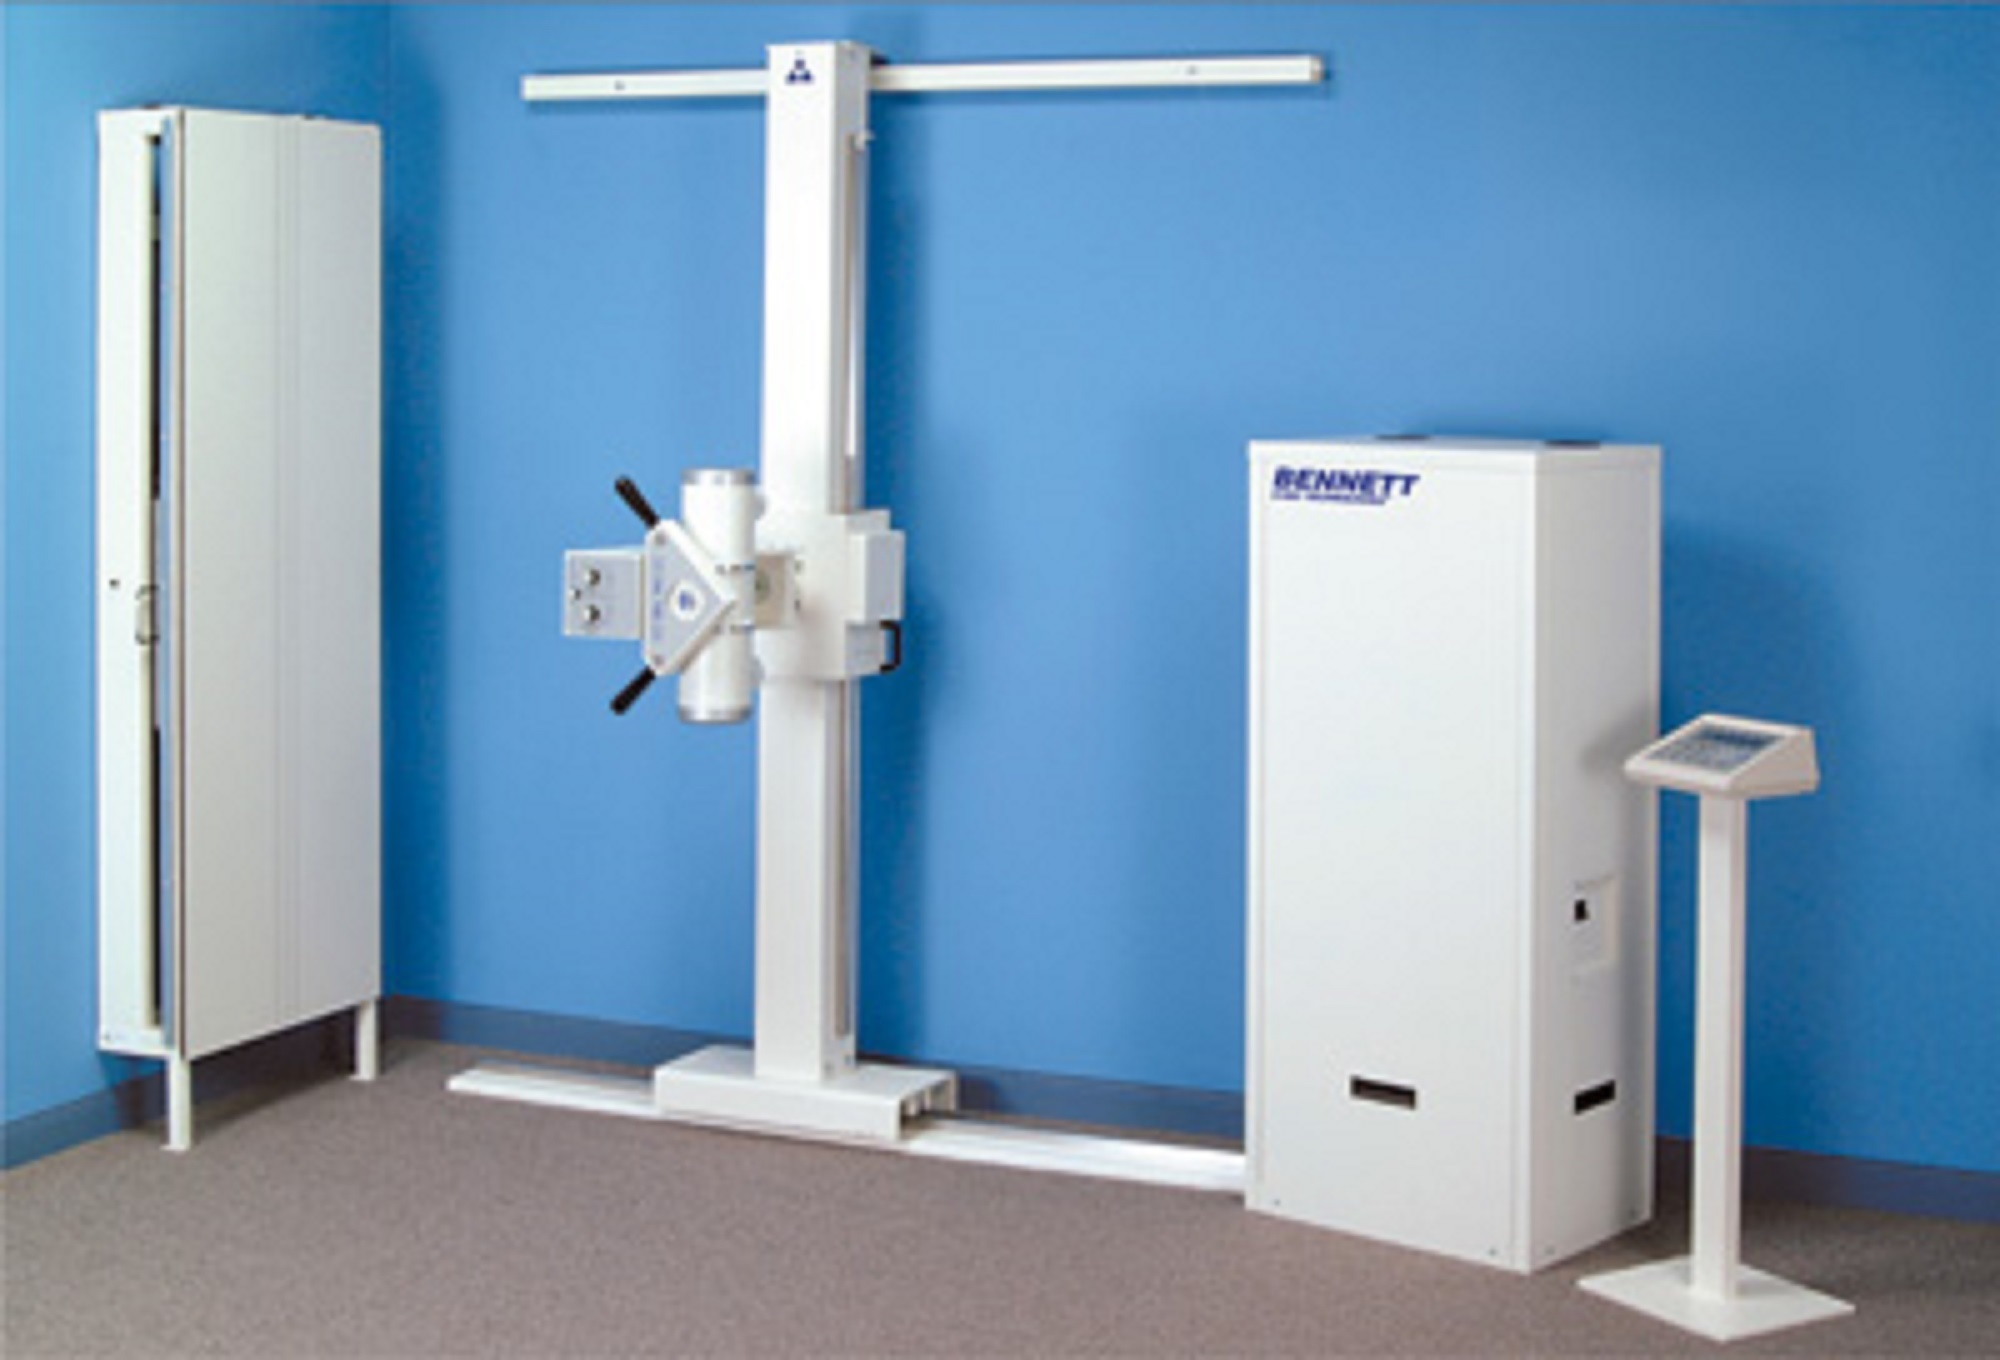 bennet-dc-film-base-xray